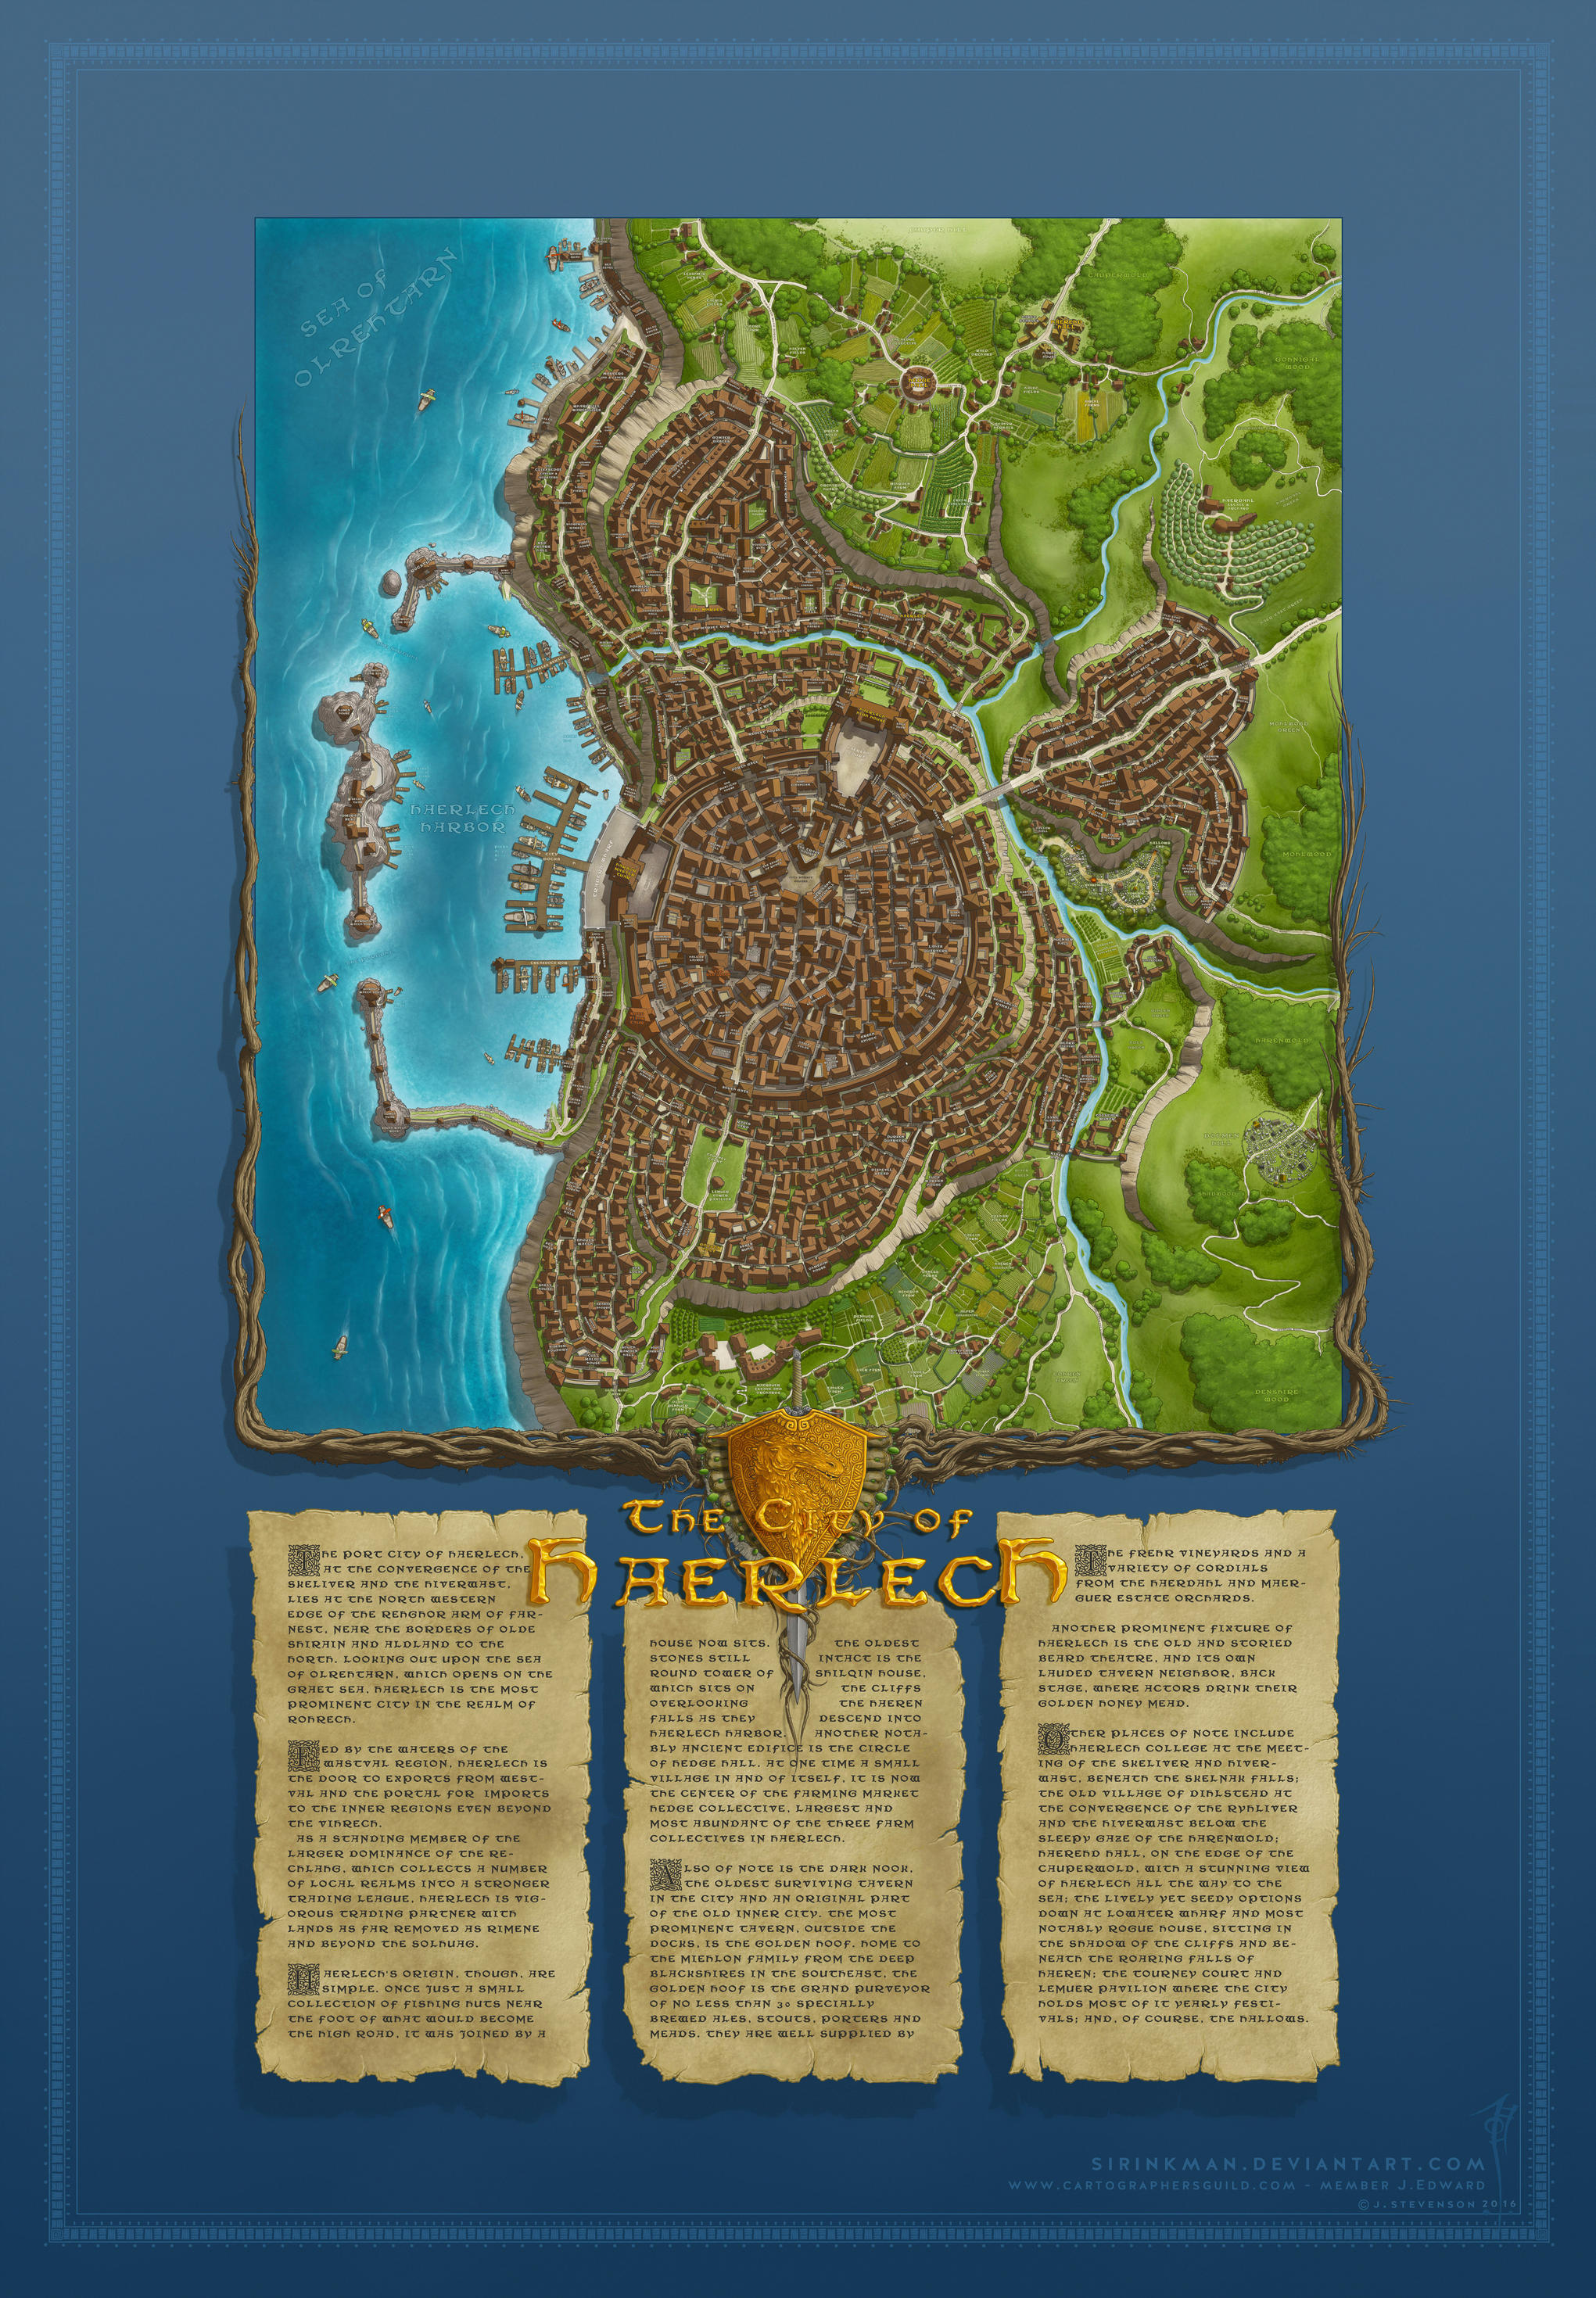 The City of Haerlech by Sirinkman [50%] by SirInkman